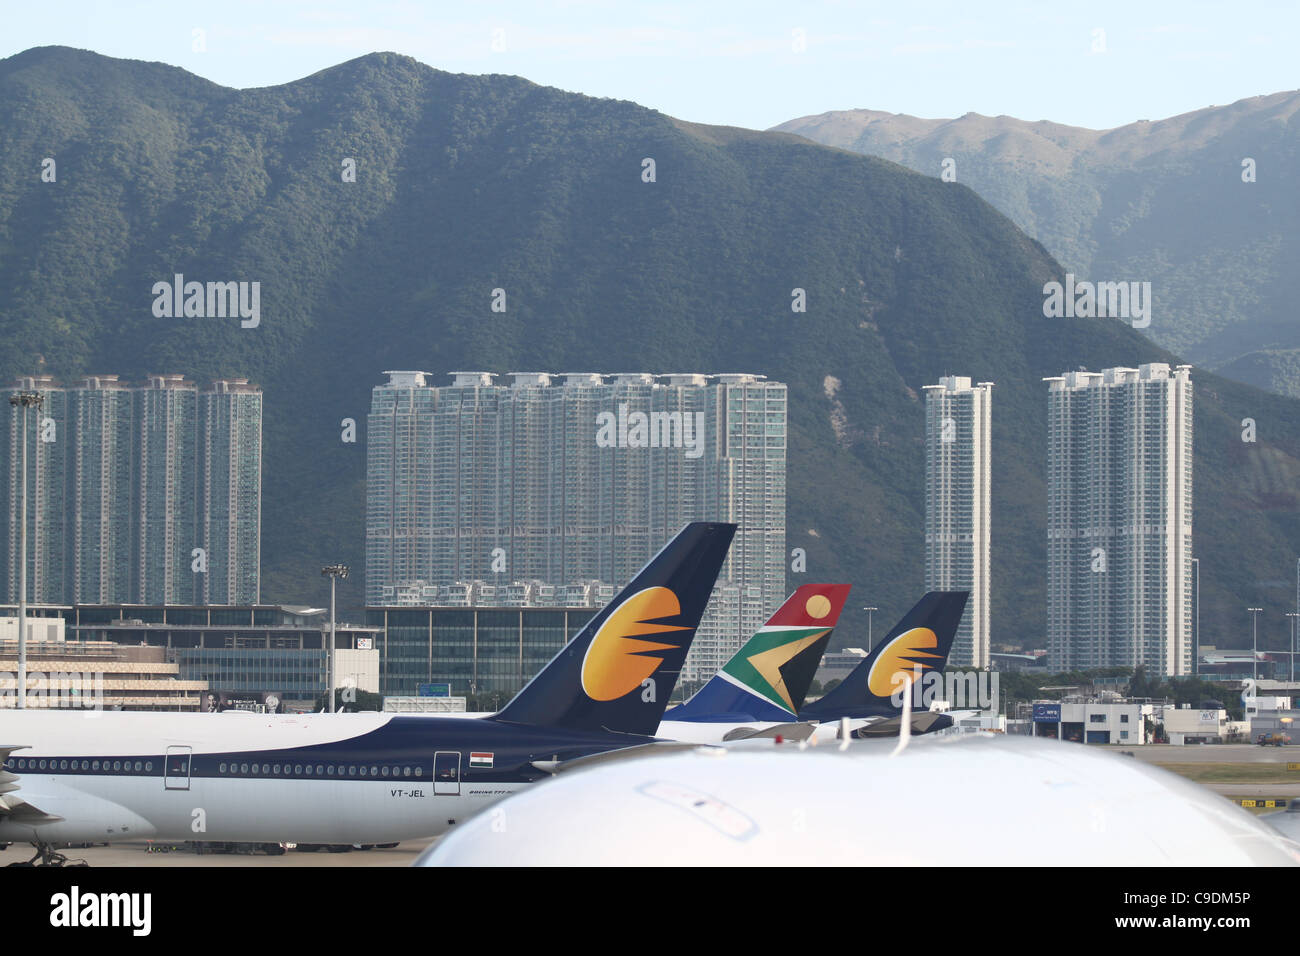 Airplane tails and high rise buildings at the Hong Kong Airport Stock Photo